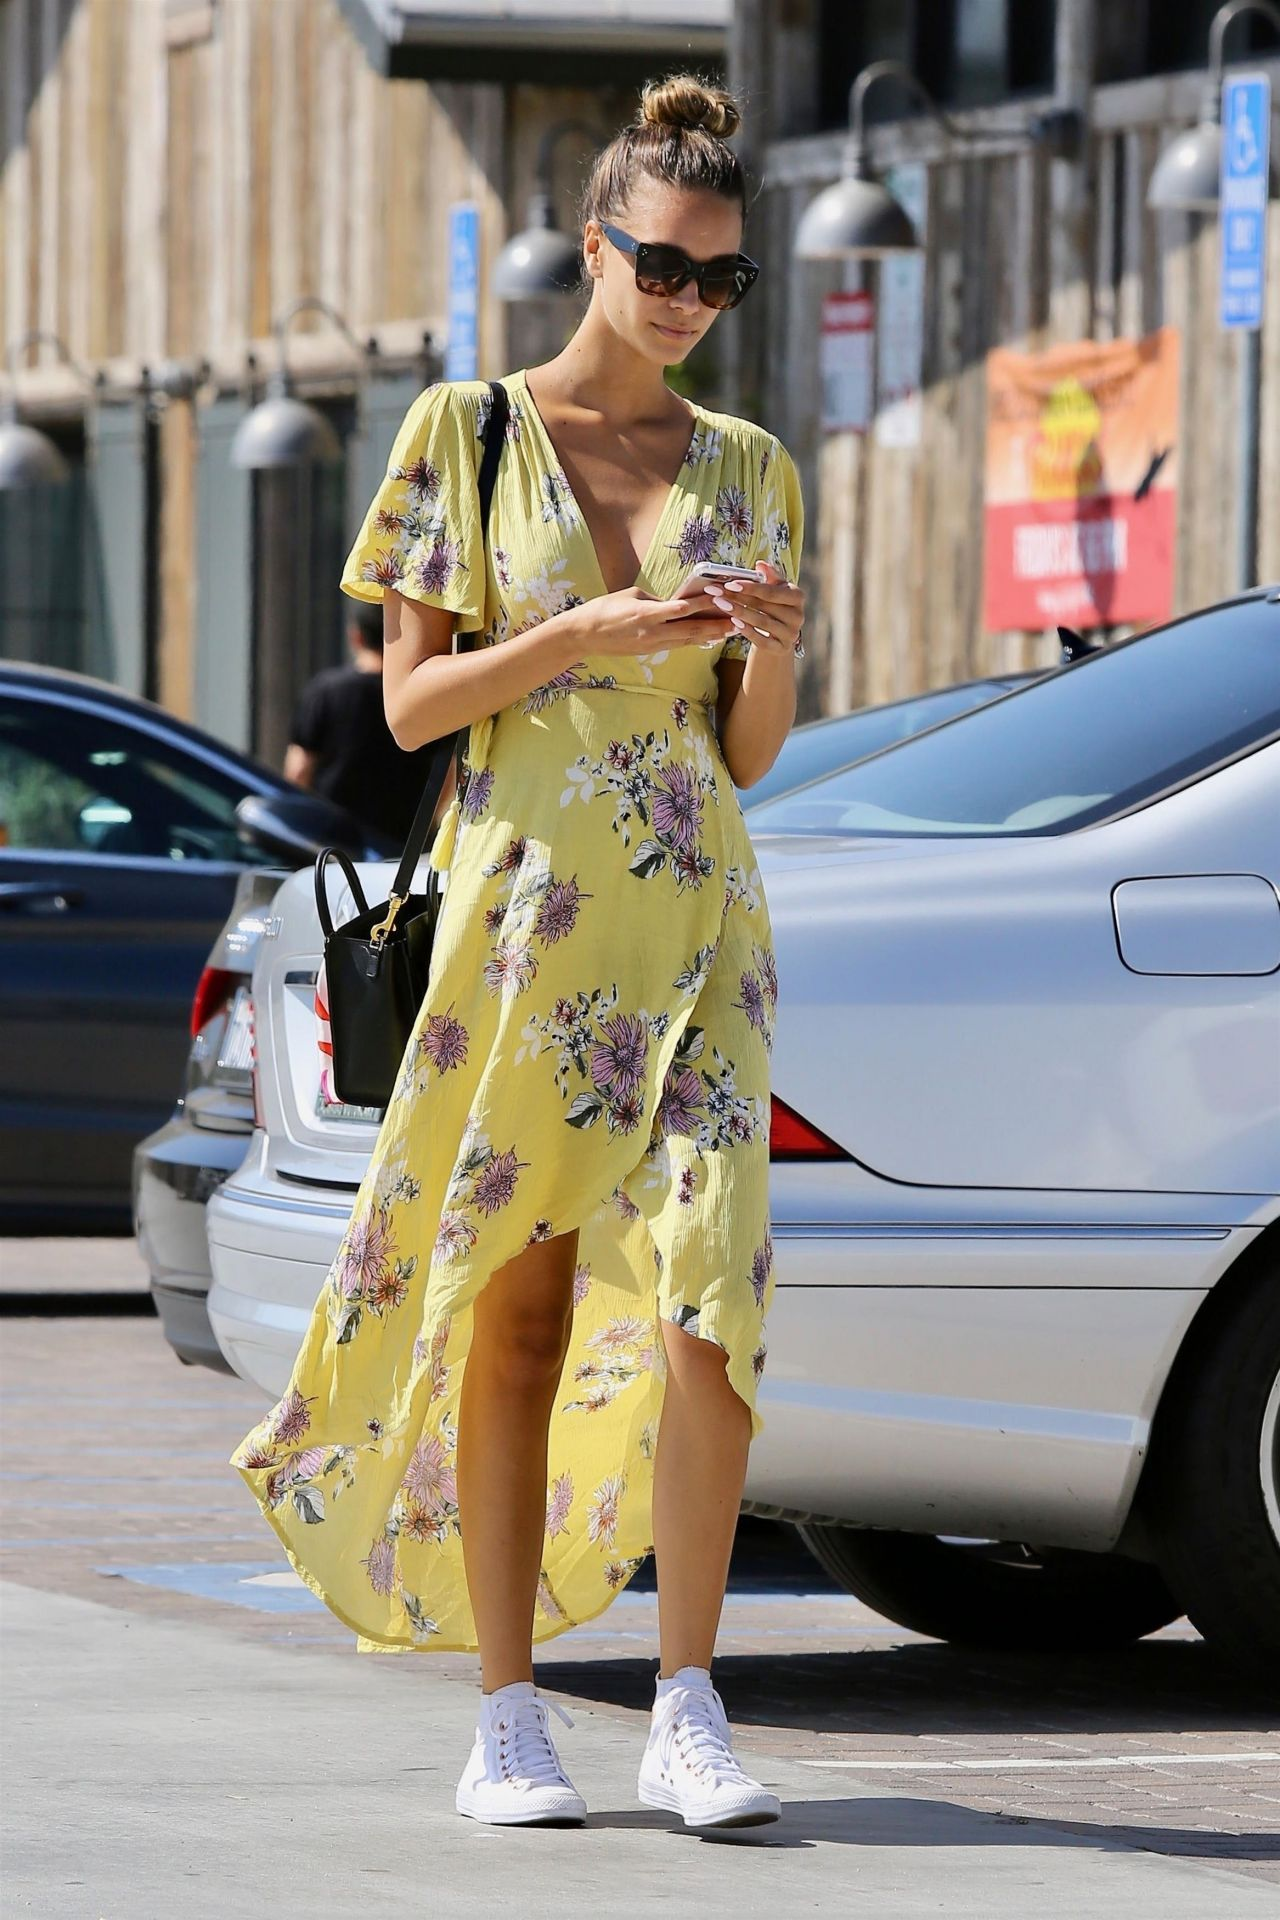 April Love Pro Makeup Academy: April Love Geary In Summer Dress